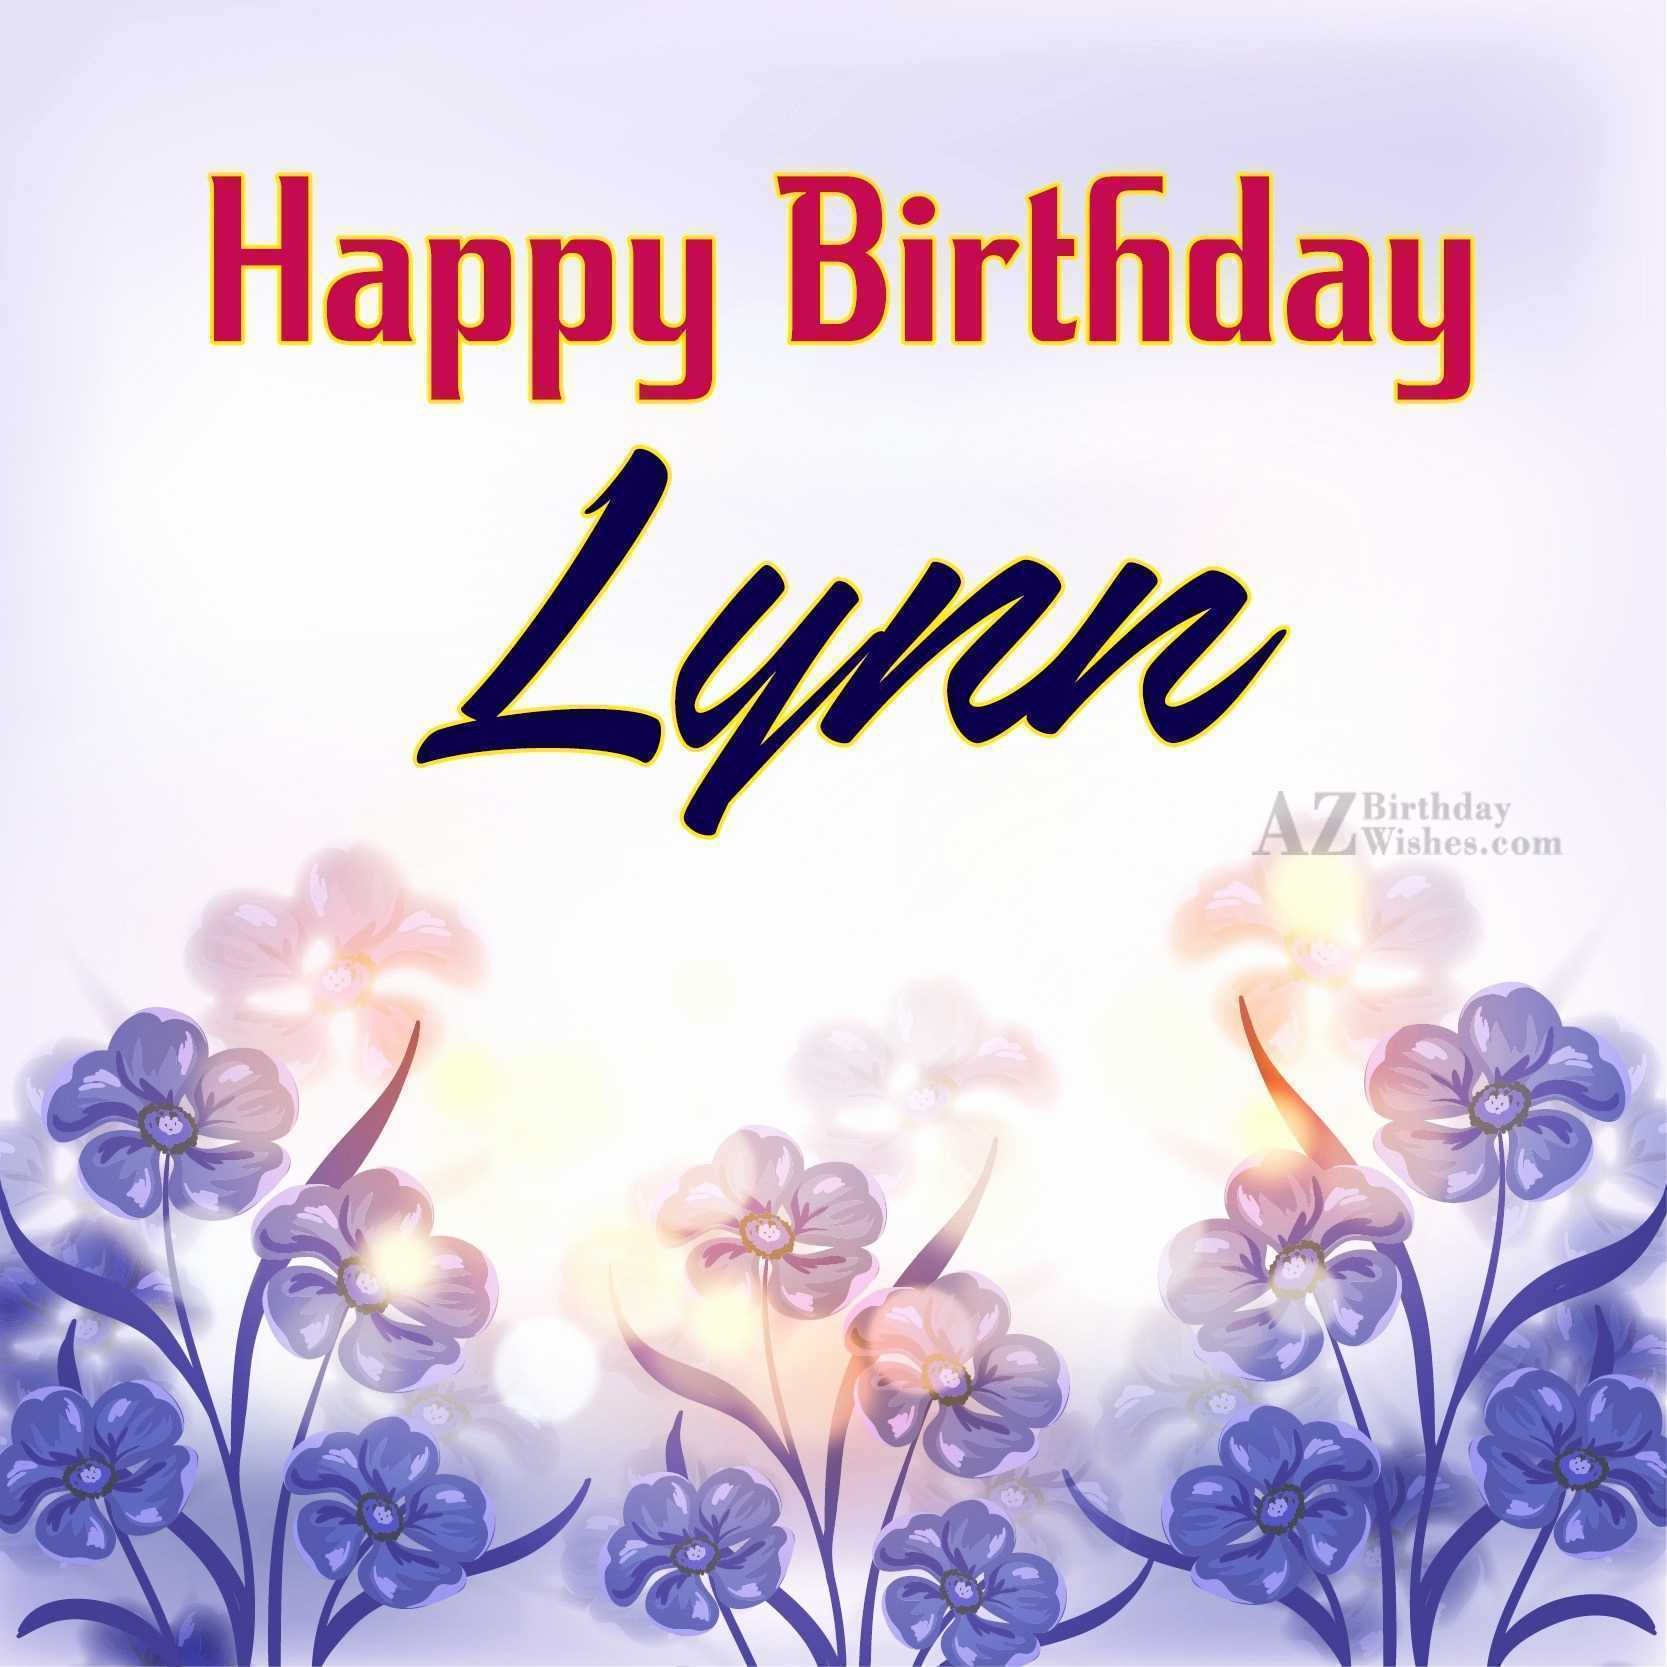 happy birthday lynn ; happy-birthday-lynn-images-luxury-happy-birthday-lynn-of-happy-birthday-lynn-images